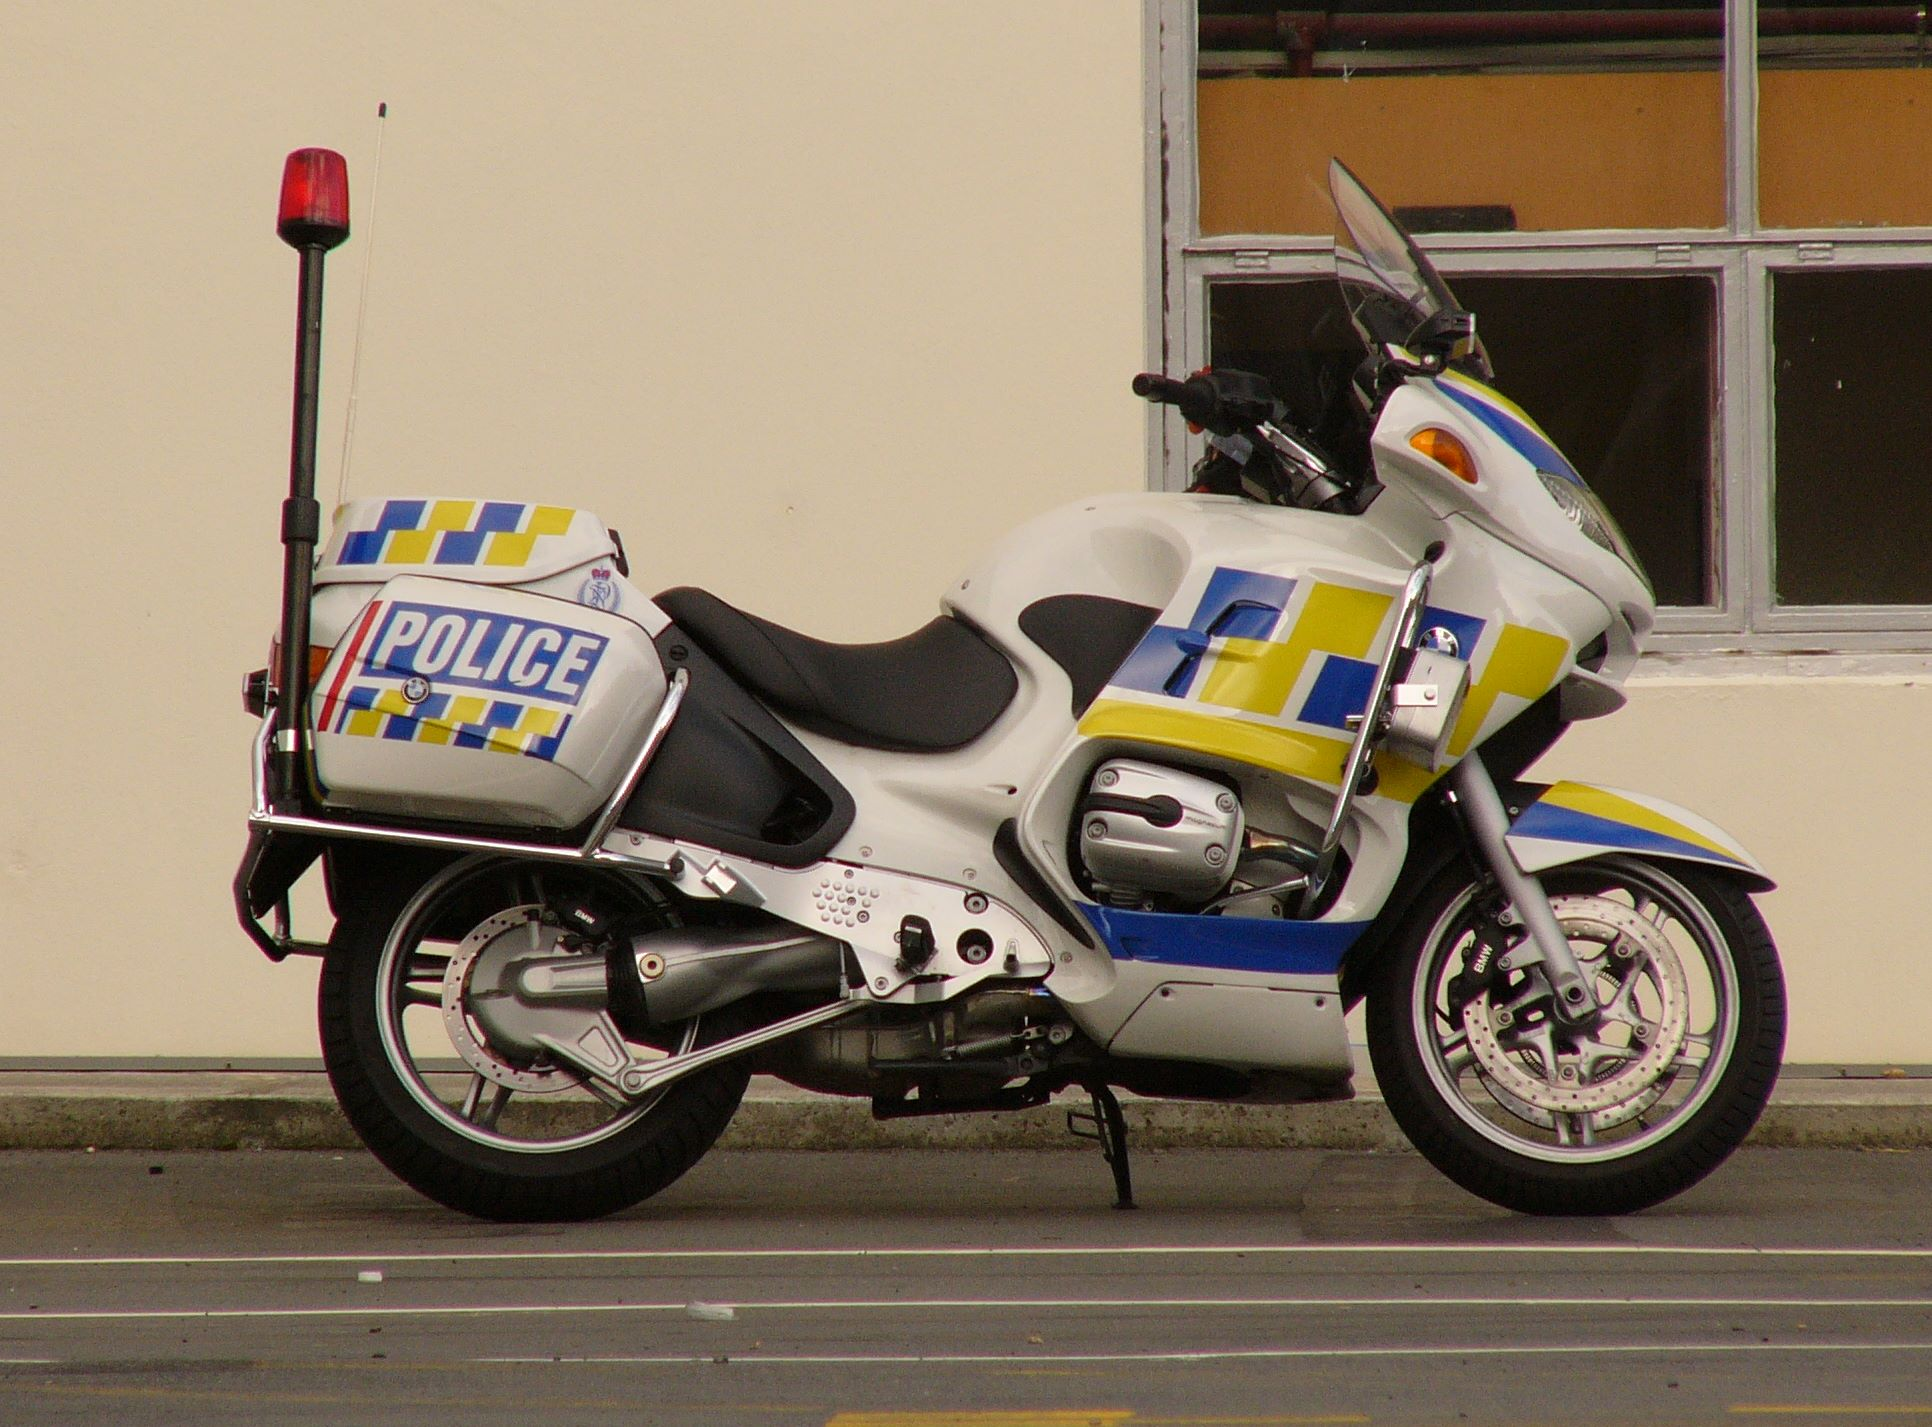 2 Police Motorcycle Hd Wallpapers Background Images Wallpaper Abyss